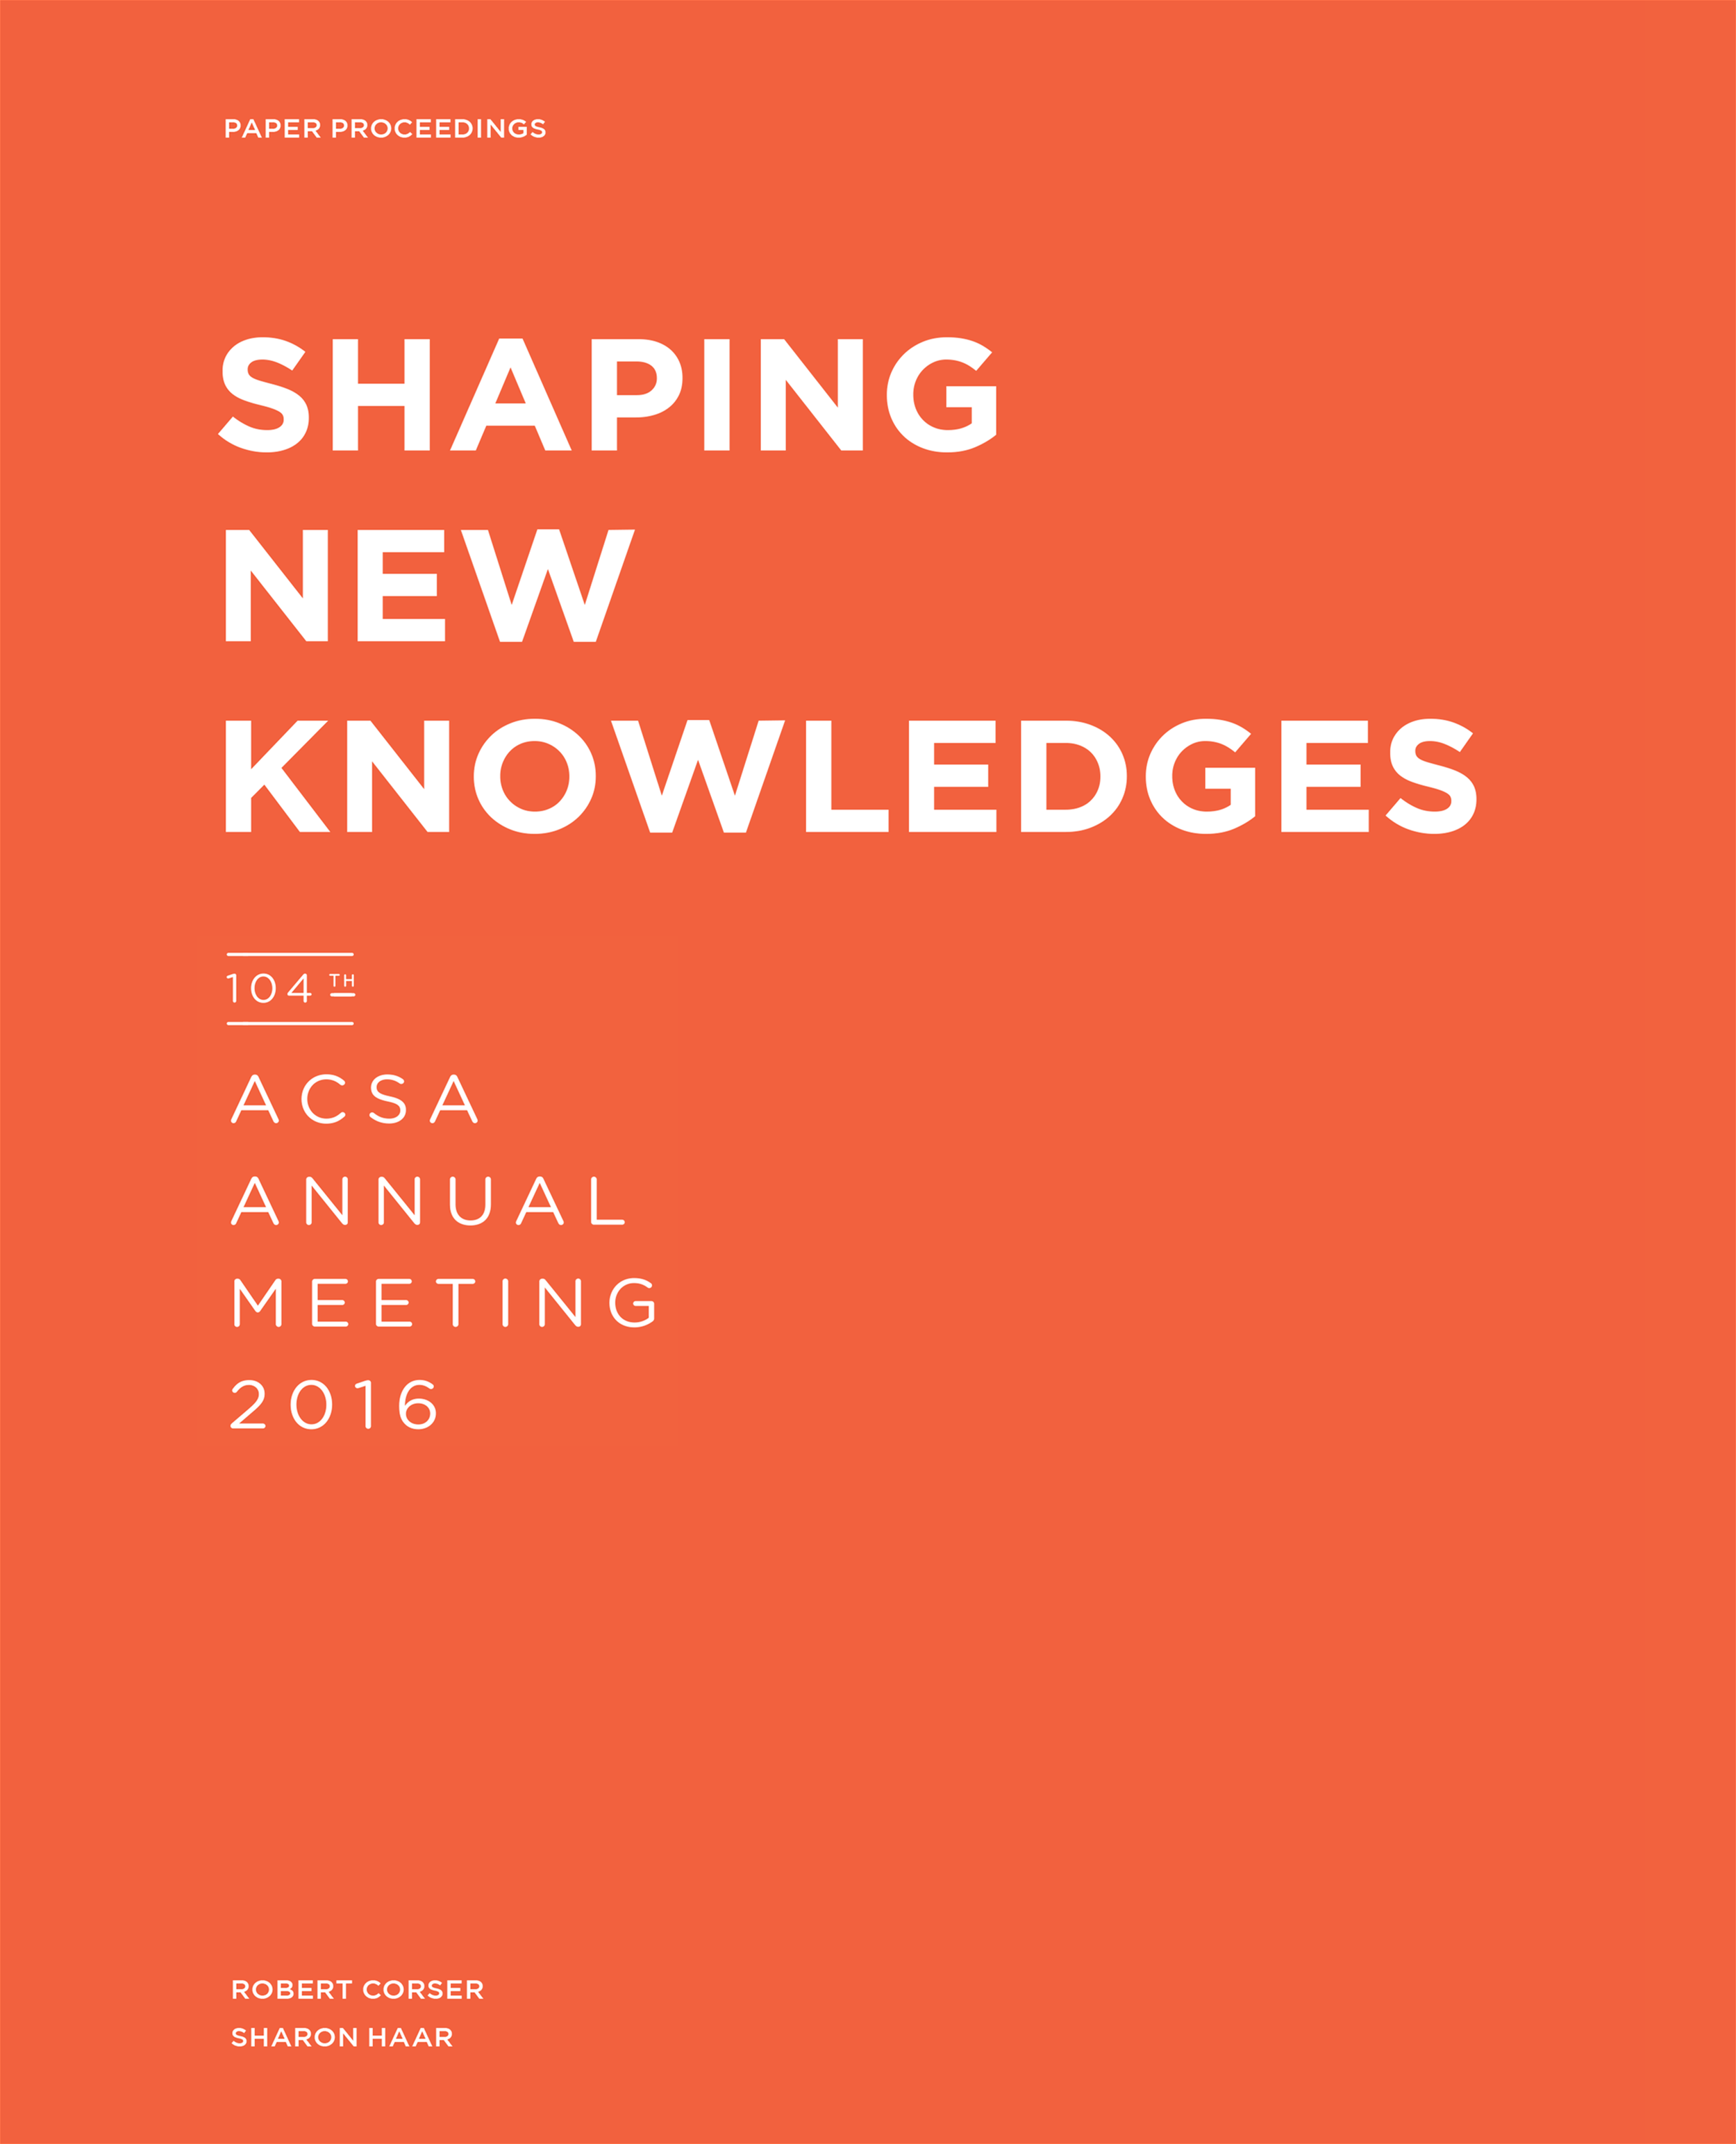 acsa_104am_paper-proceedings_cover.png